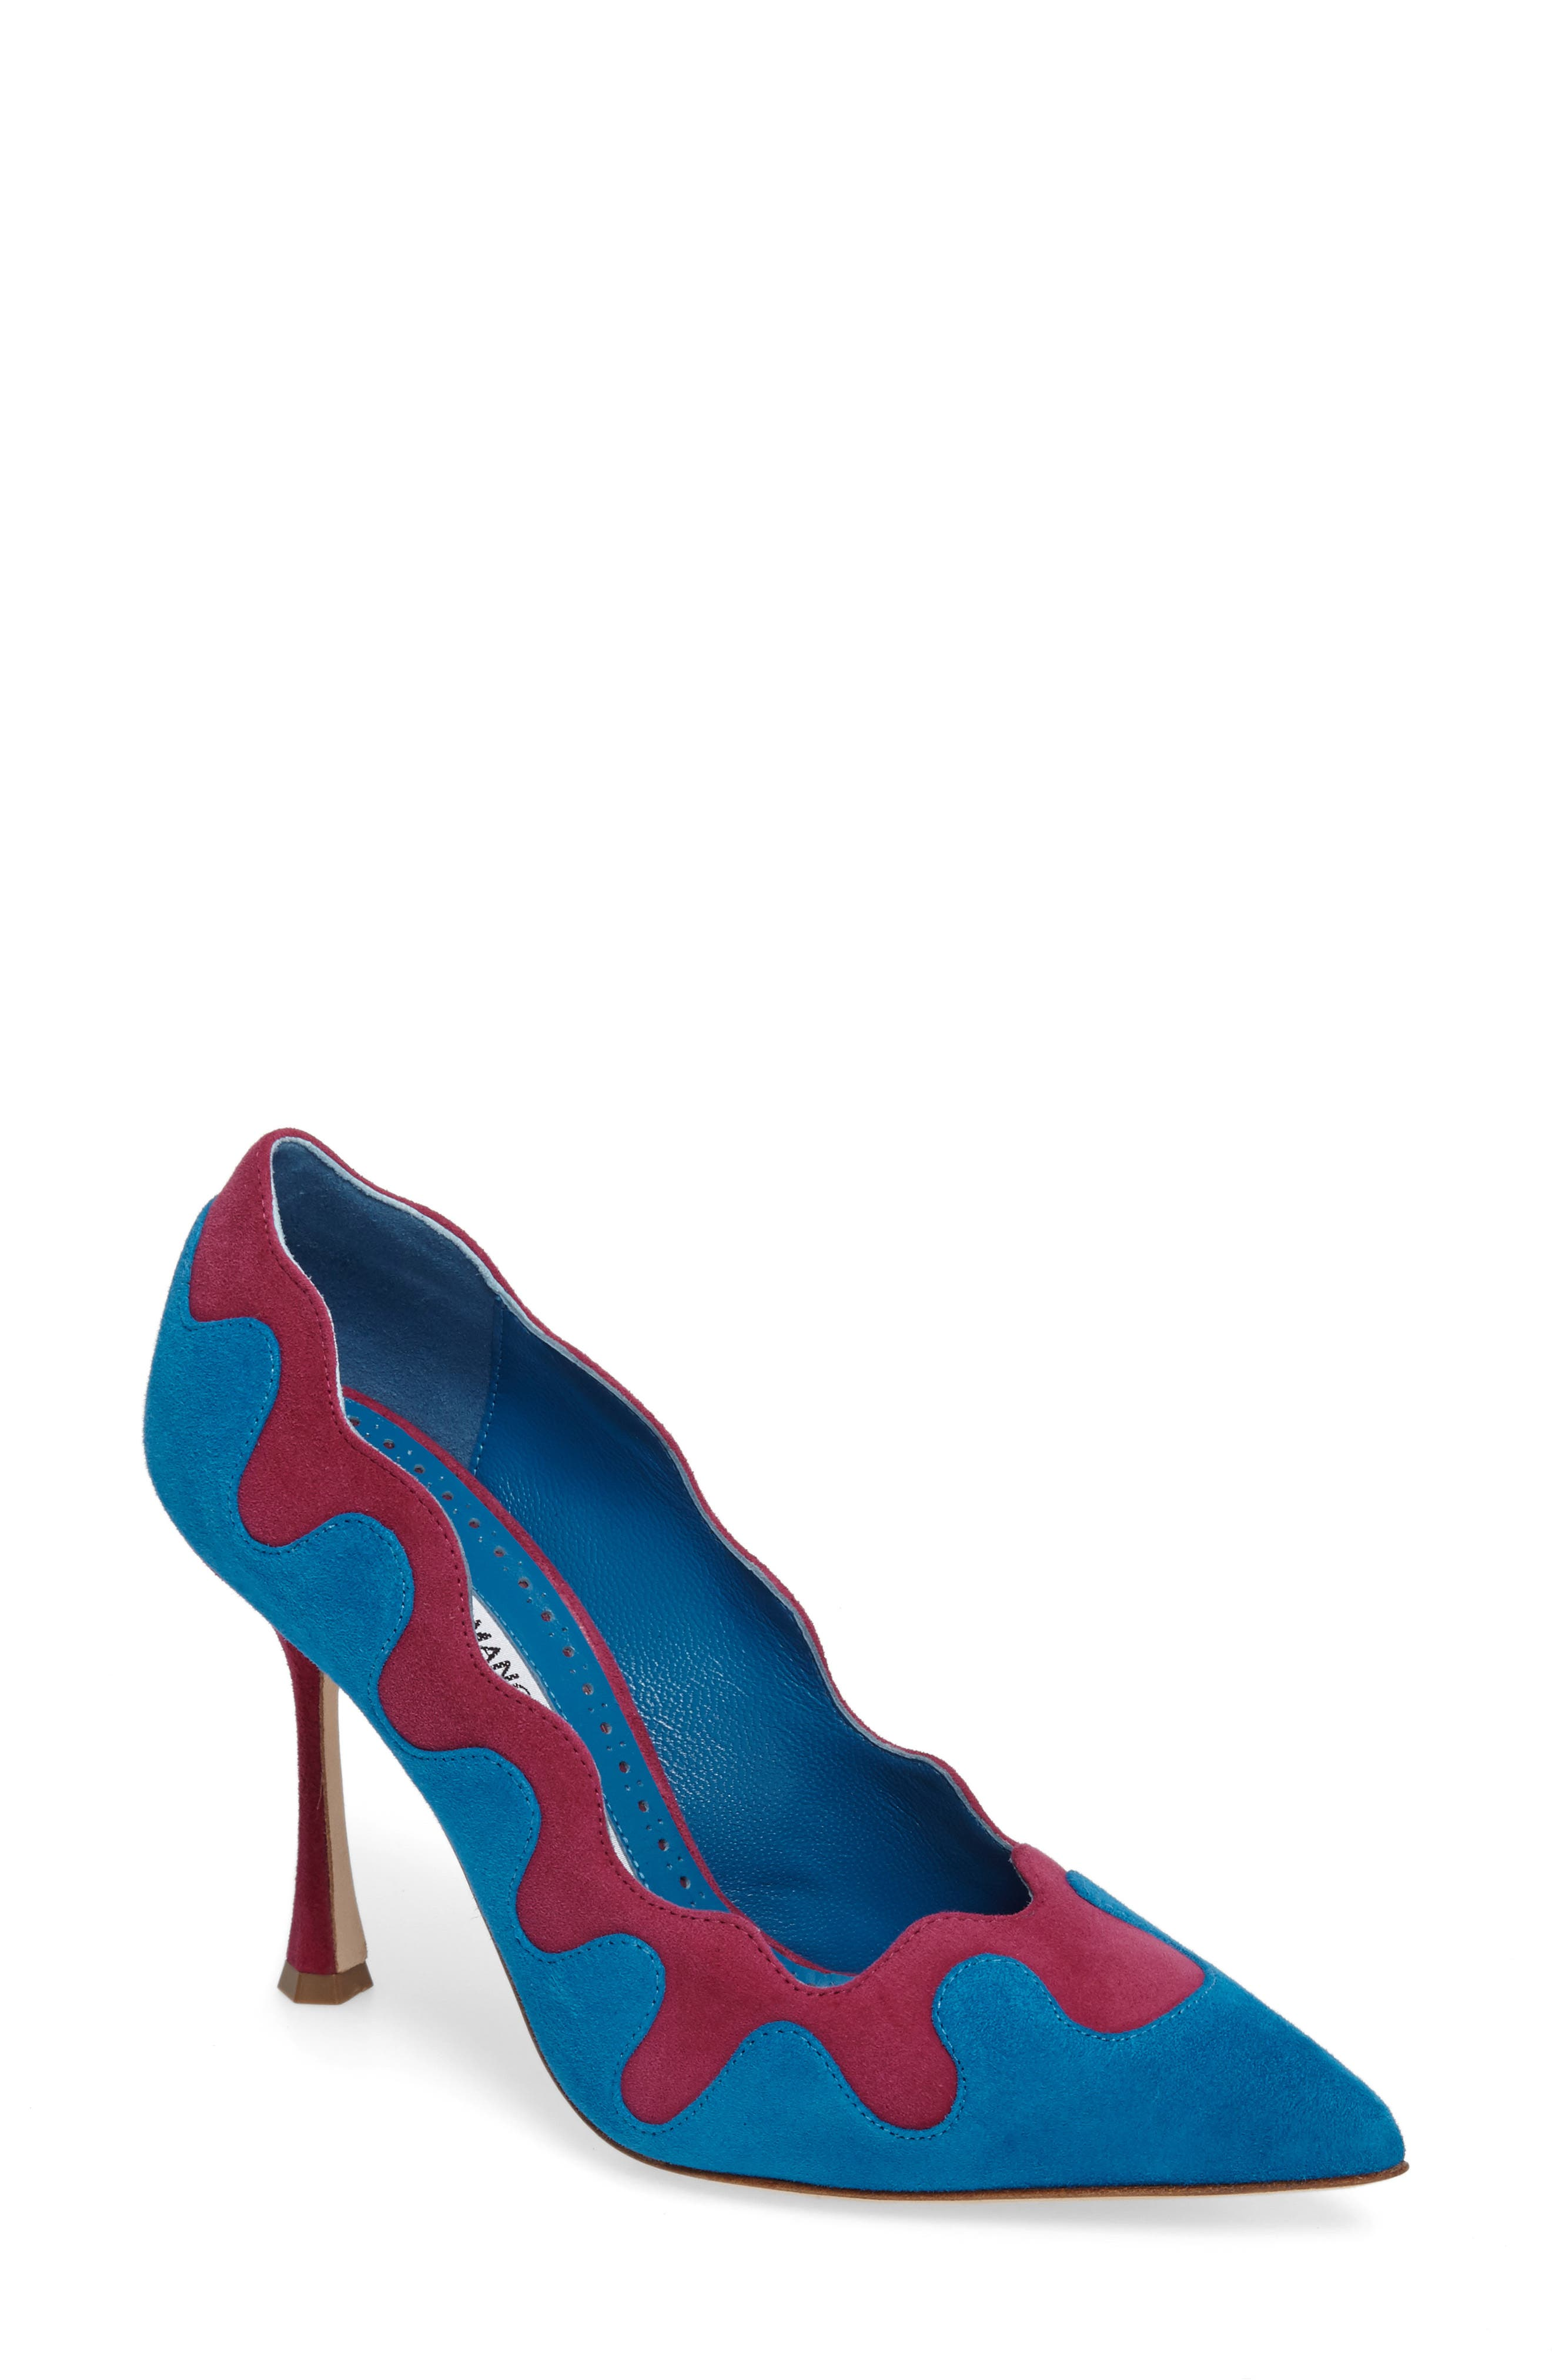 Manolo Blahnik Ulderica Pointy Toe Pump (Women)